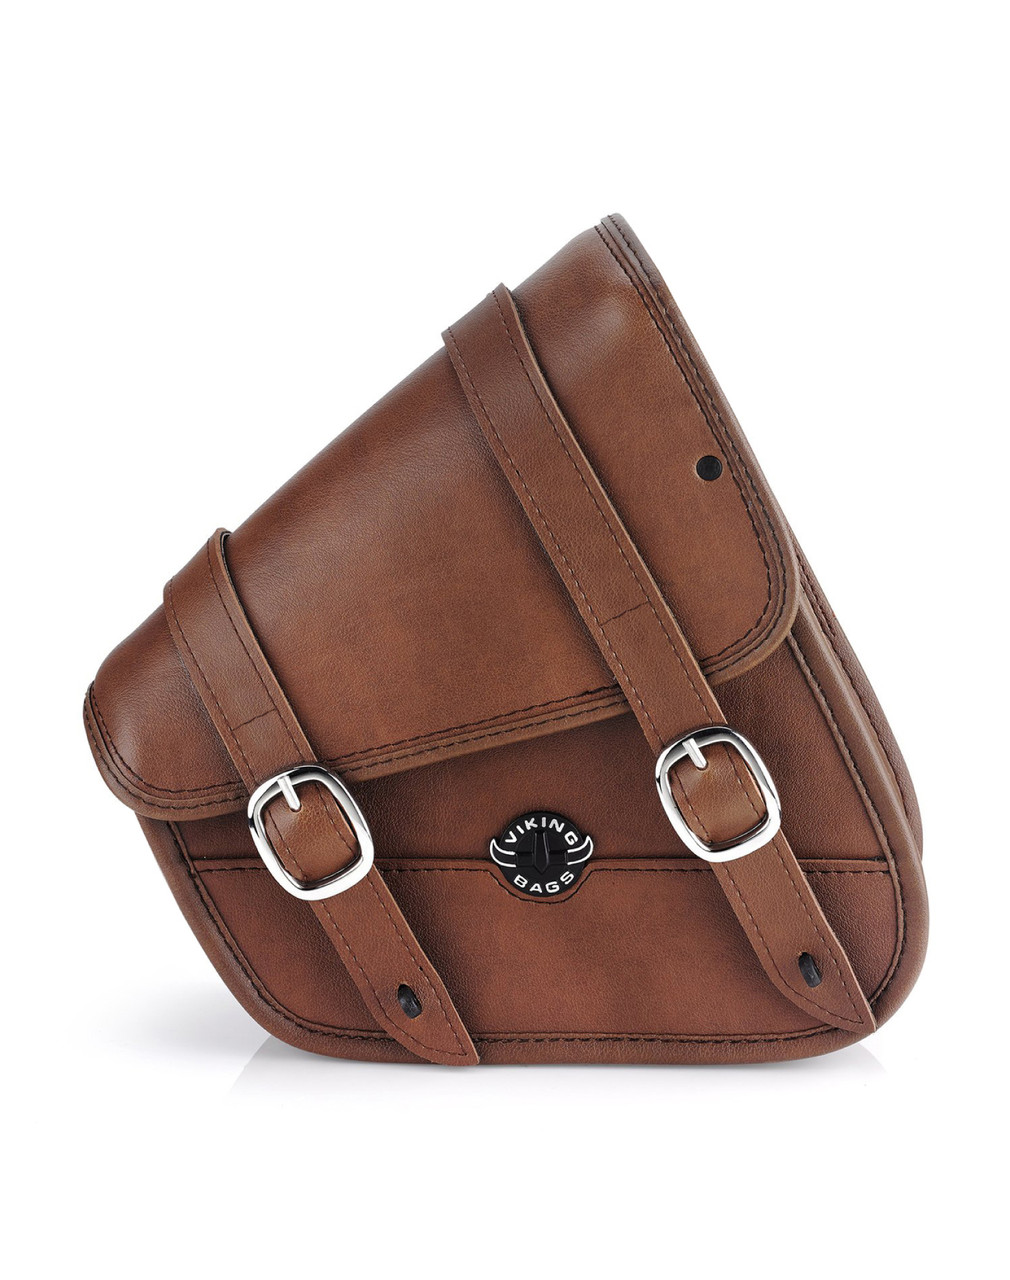 VikingBags Sportster Specific Brown Motorcycle Swing Arm Bag Front View